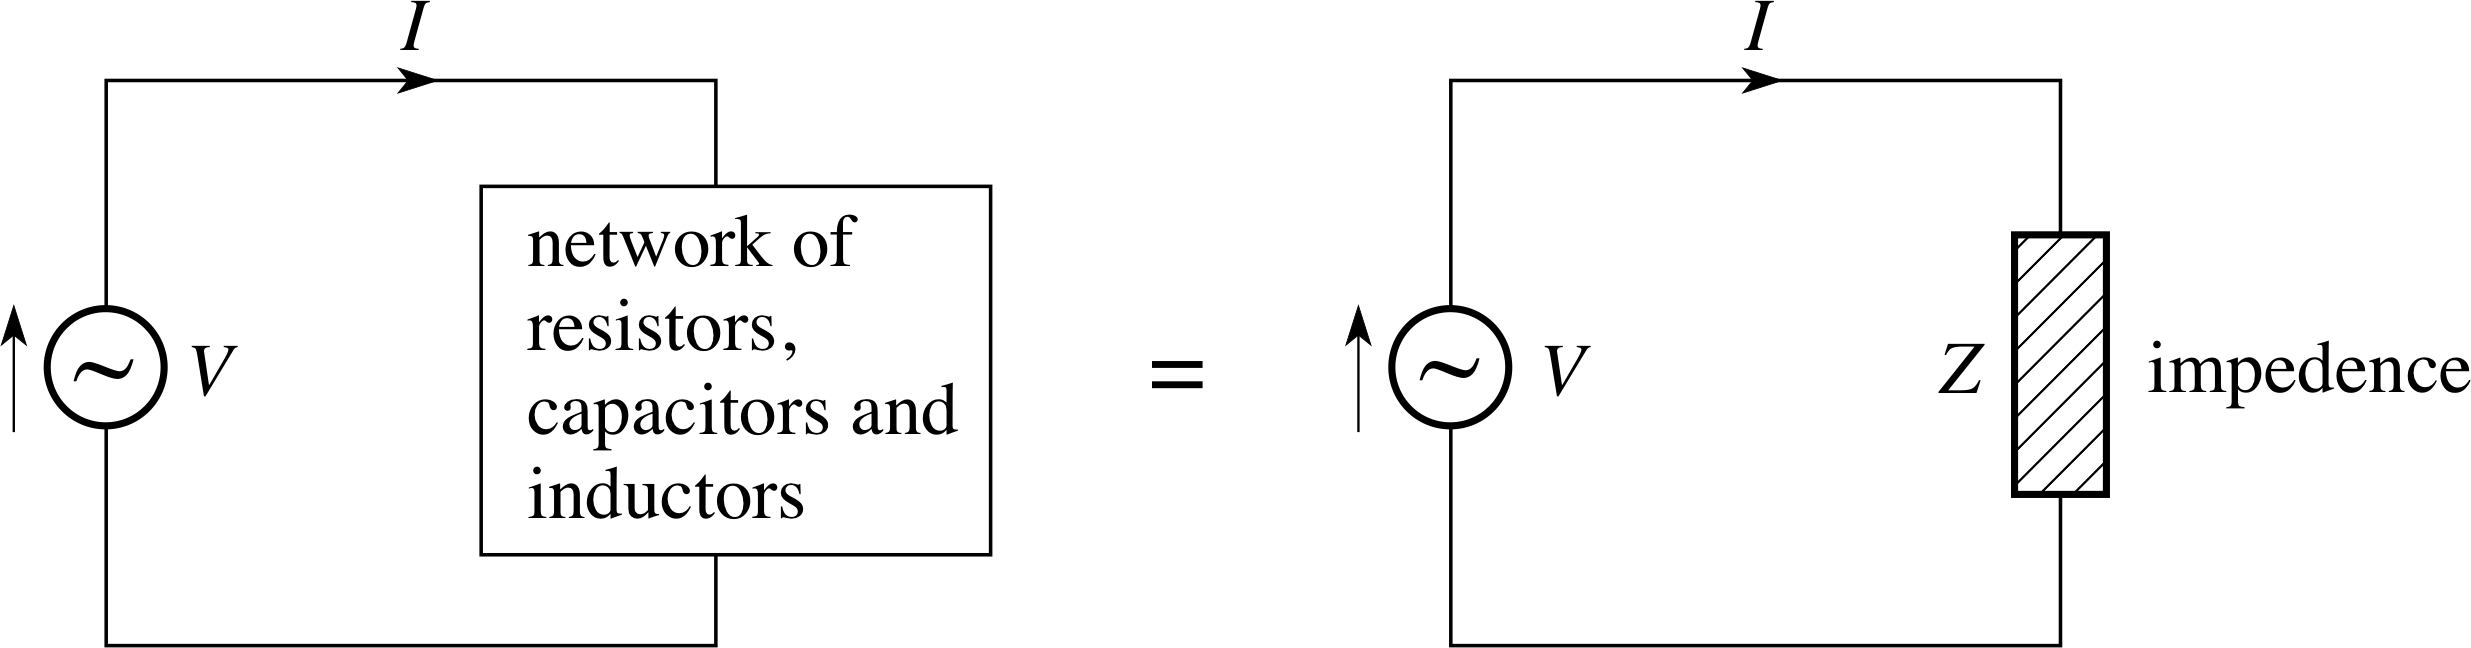 Pplato Flap Phys 54 Ac Circuits And Electrical Oscillations An R Lc Series Circuit It Shows A Resistor Connected In Figure